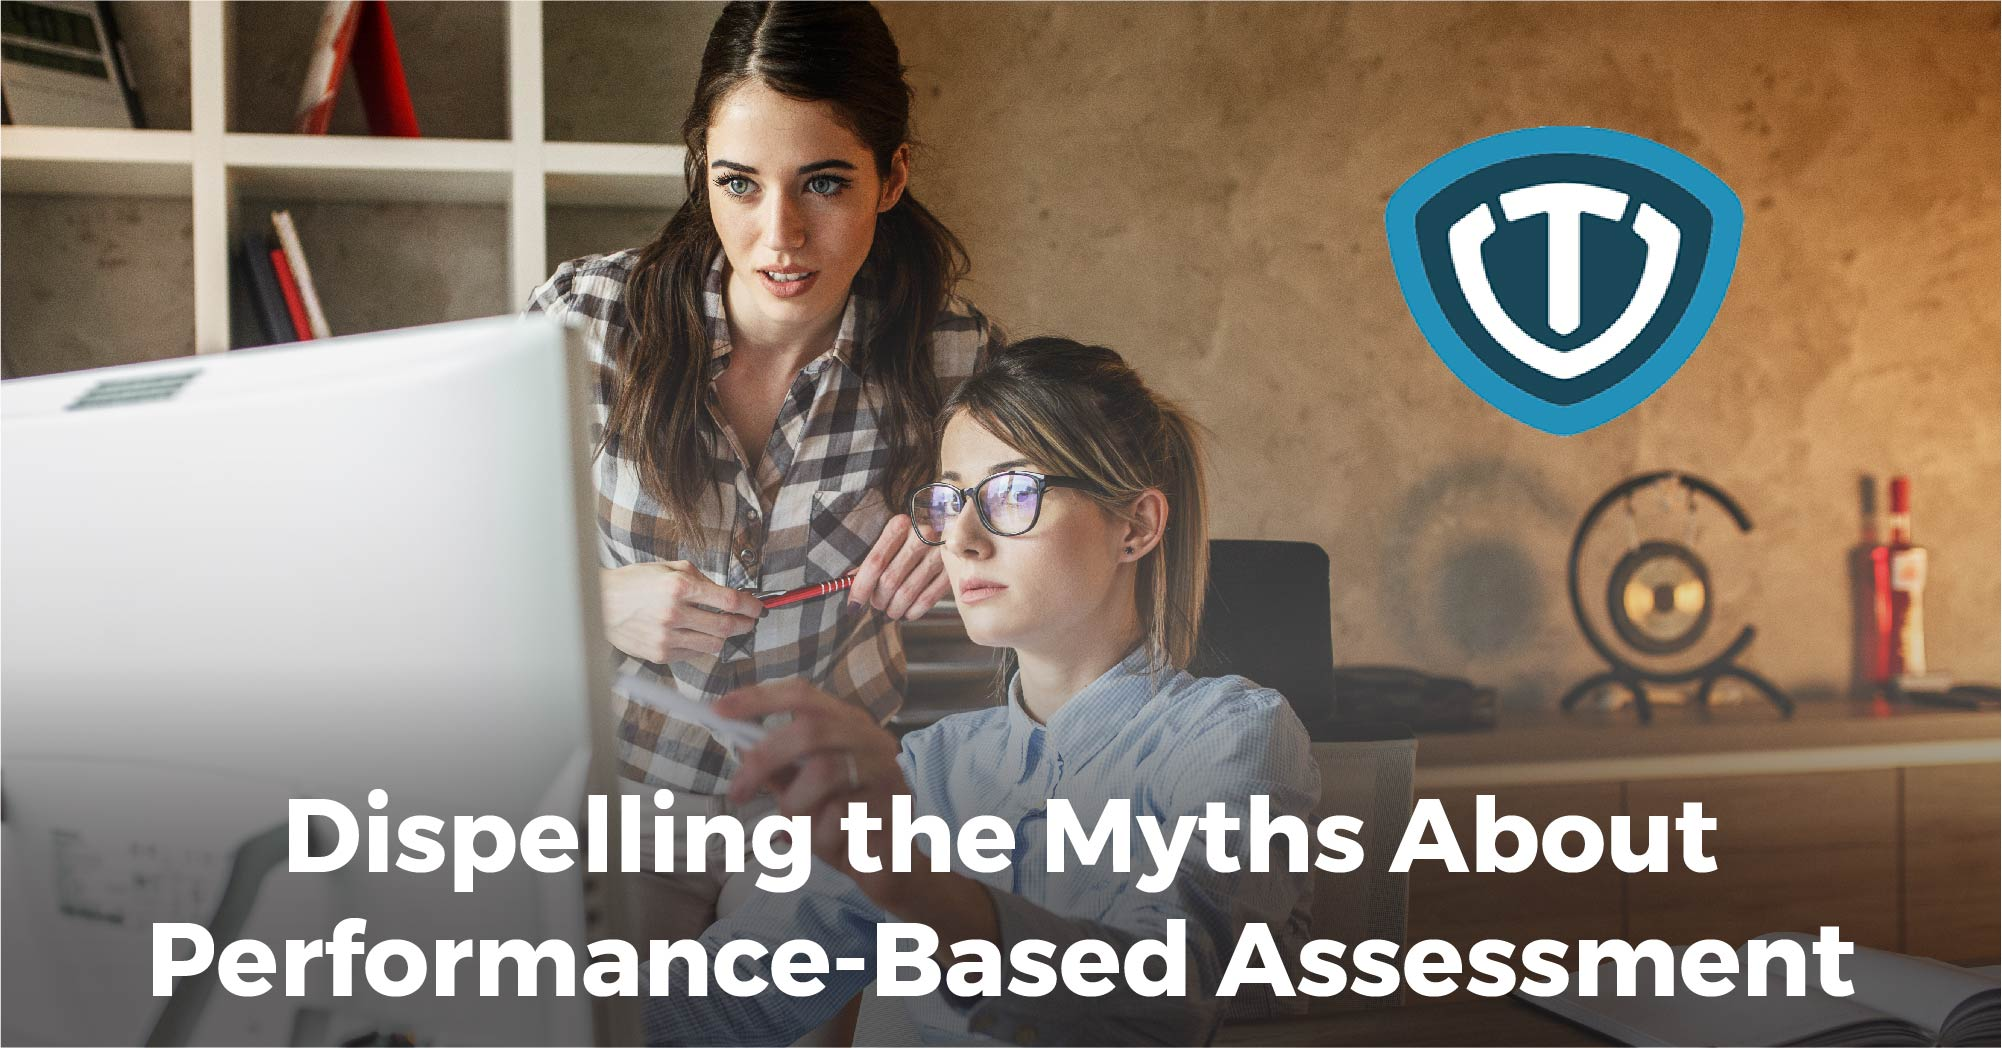 Dispelling the Myths About Performance-Based Assessment